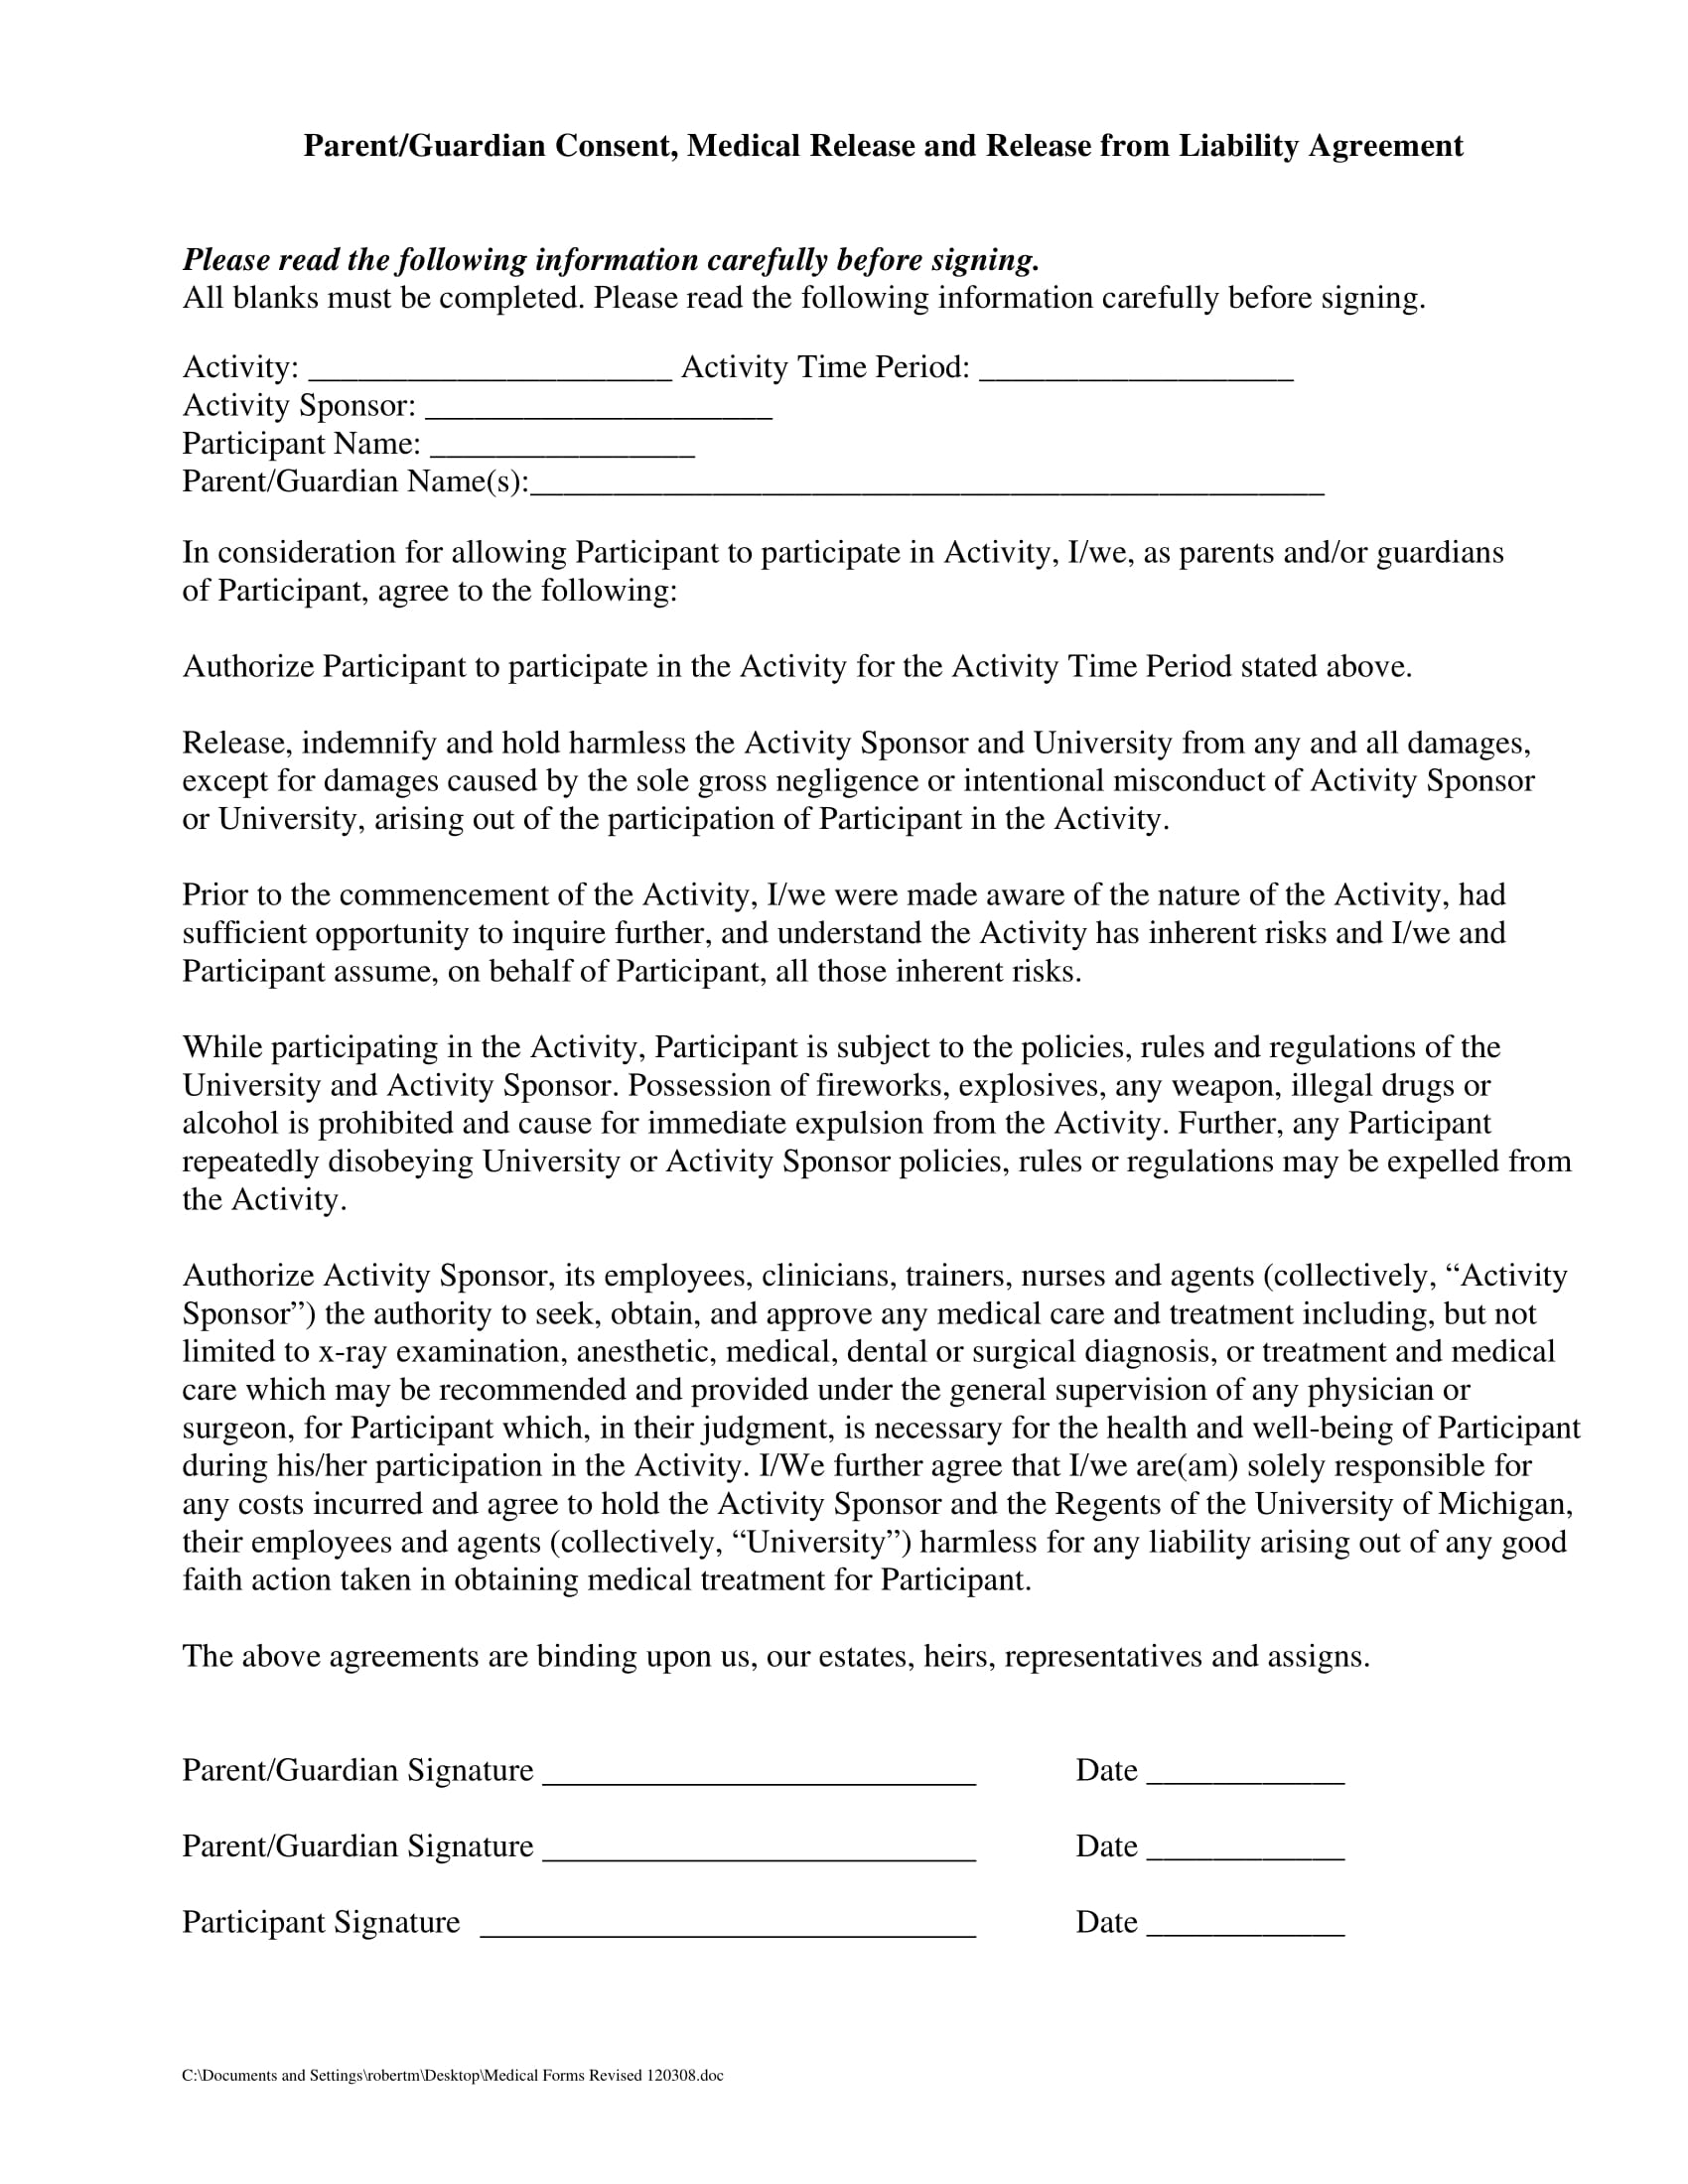 medical release parent consent agreement contract form 1